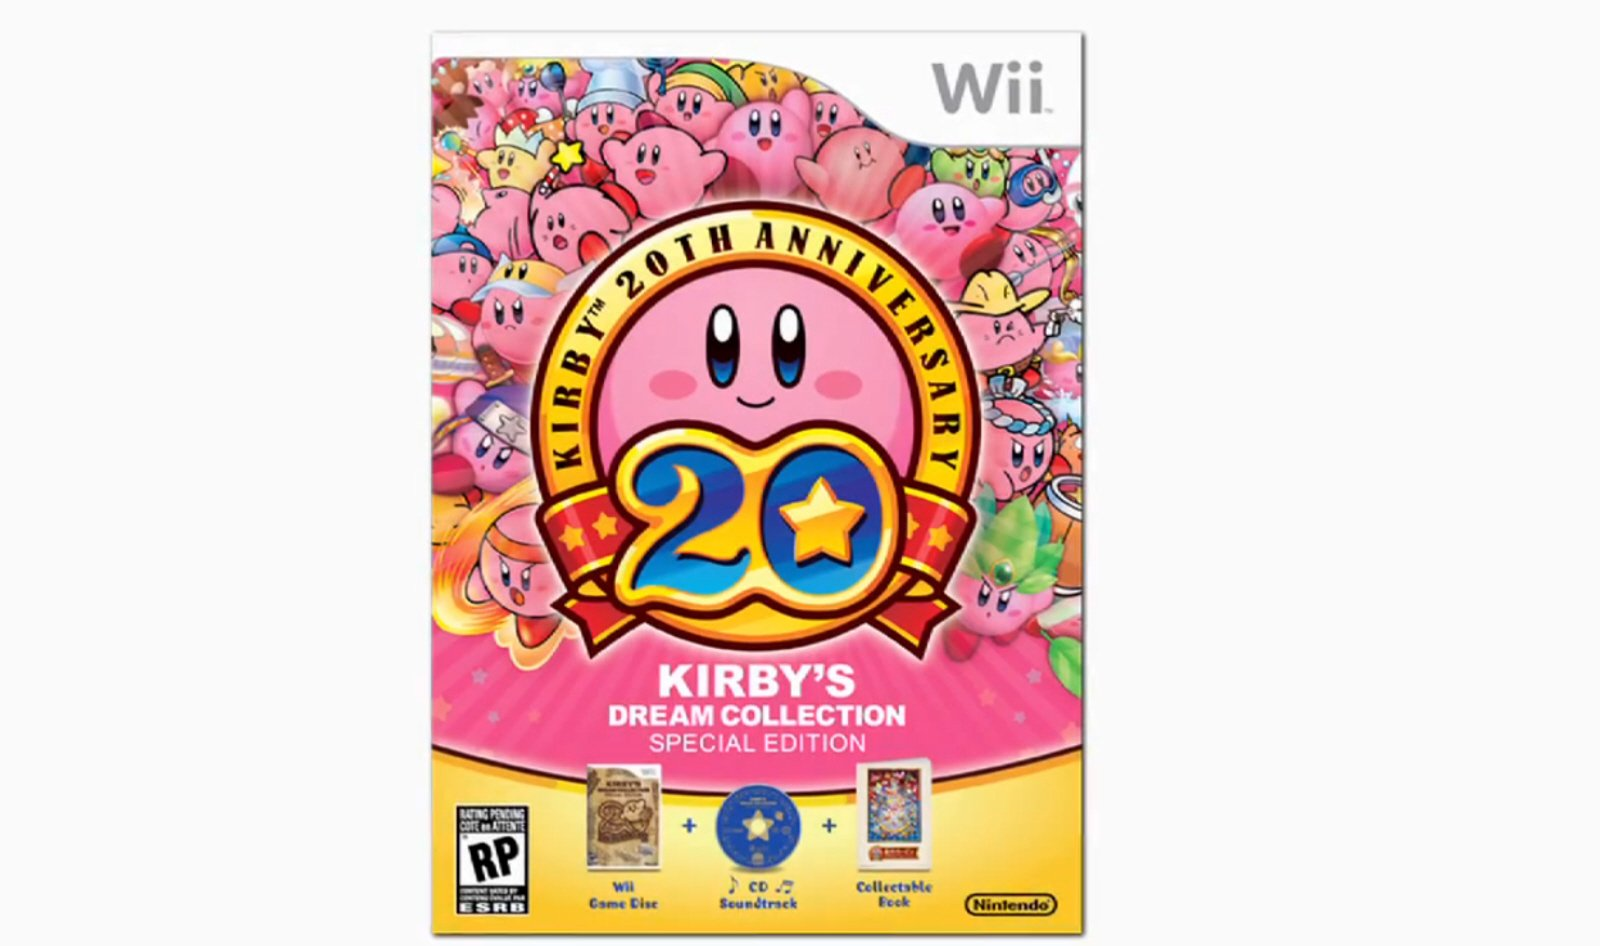 Kirby's Dream Collection (Wii) Review 2